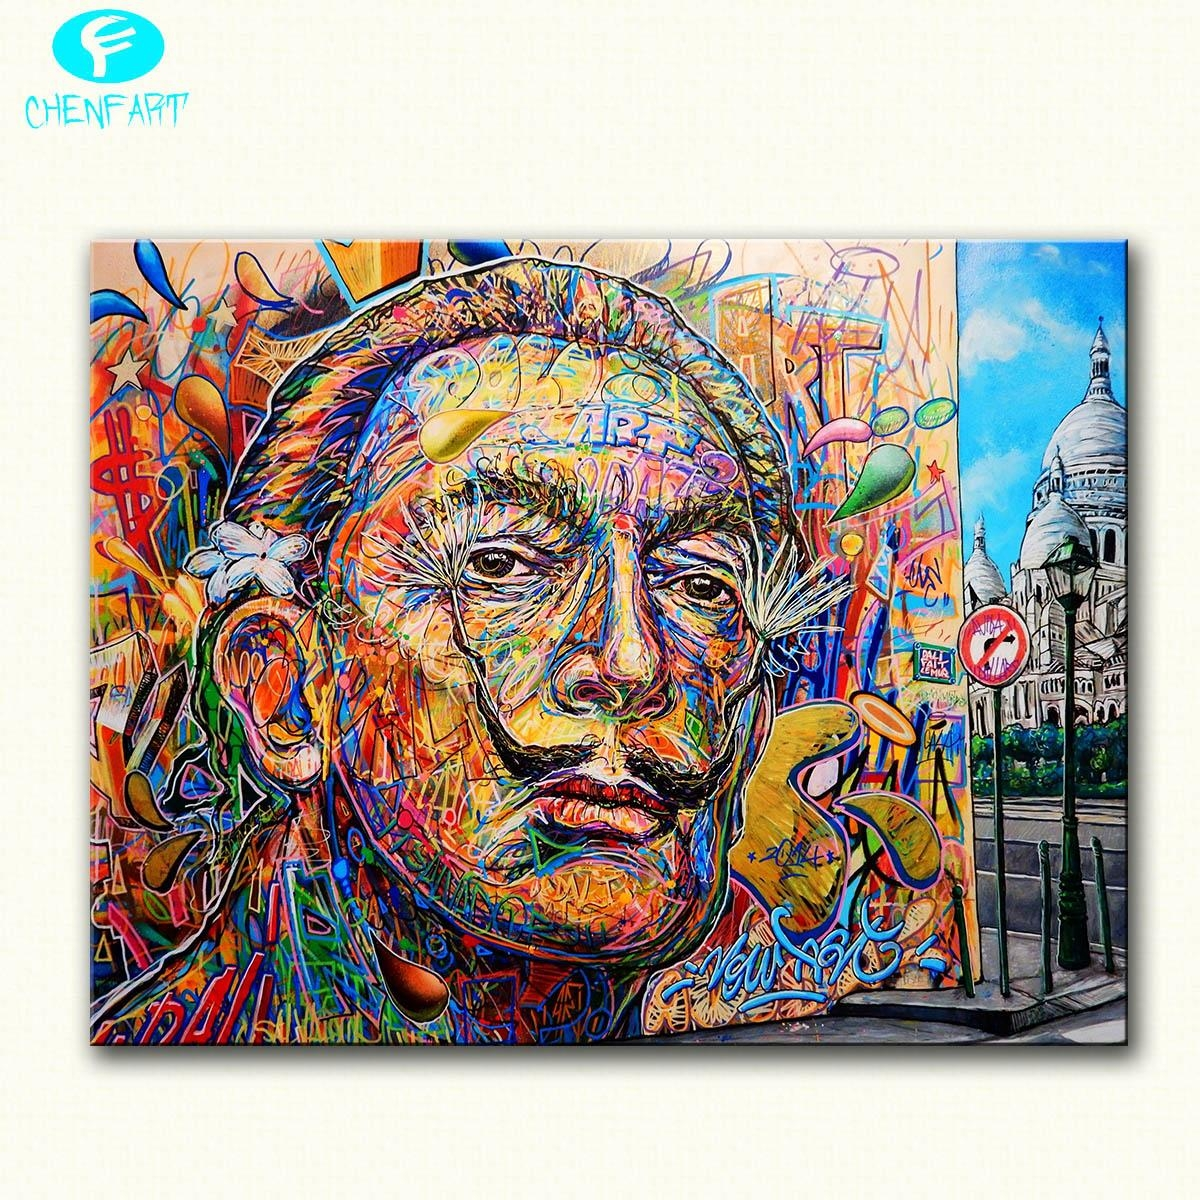 Compare Prices On Canvas Wall Art Salvador Dali Online Shopping With Regard To Salvador Dali Wall Art (View 20 of 20)